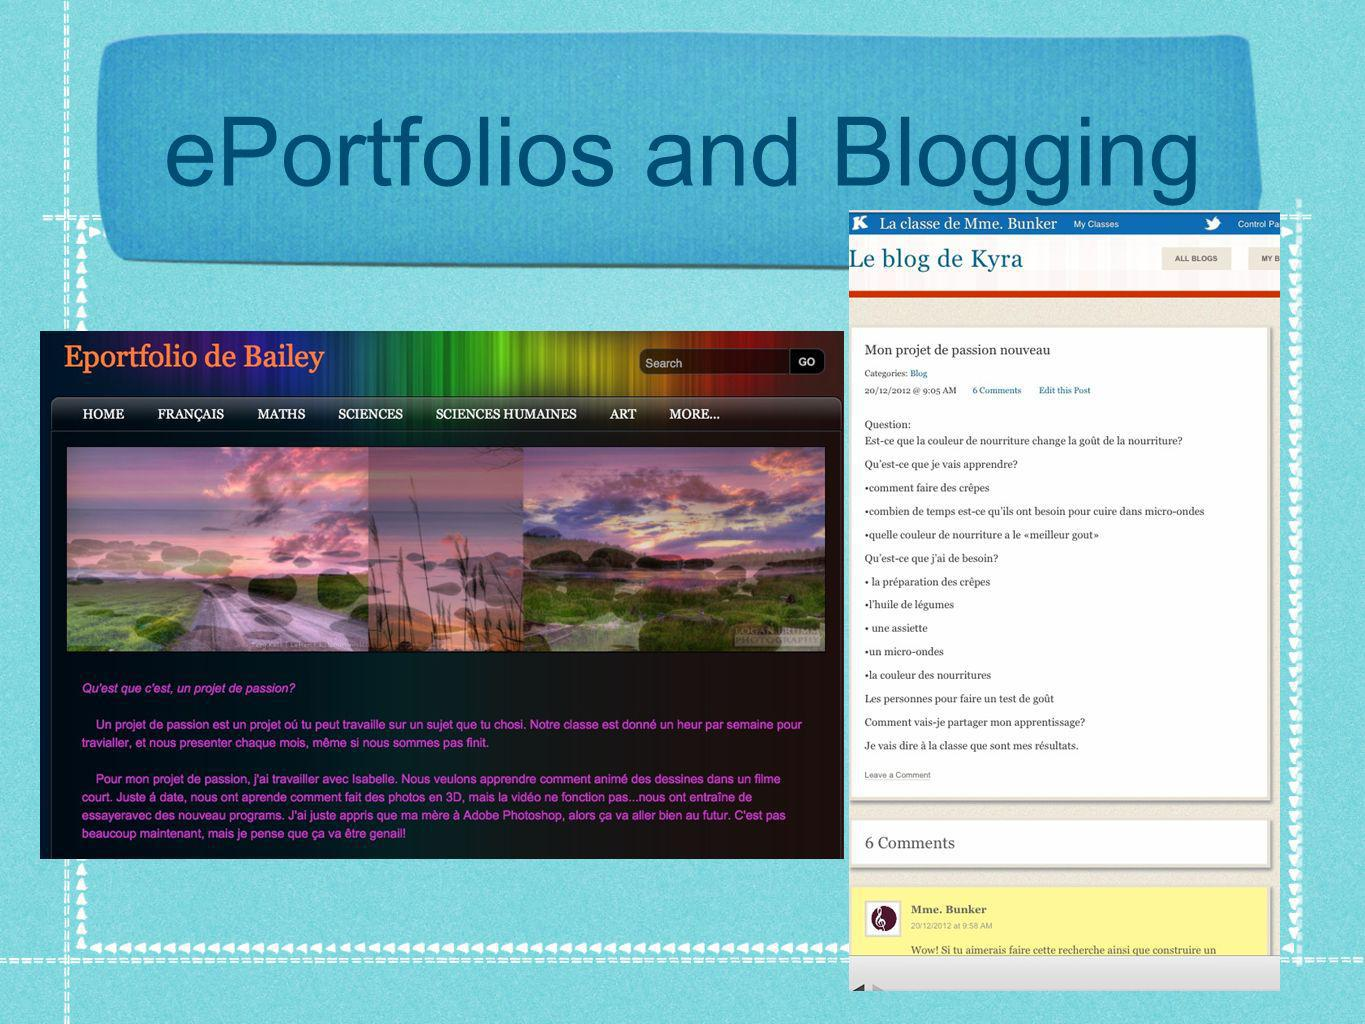 ePortfolios and Blogging